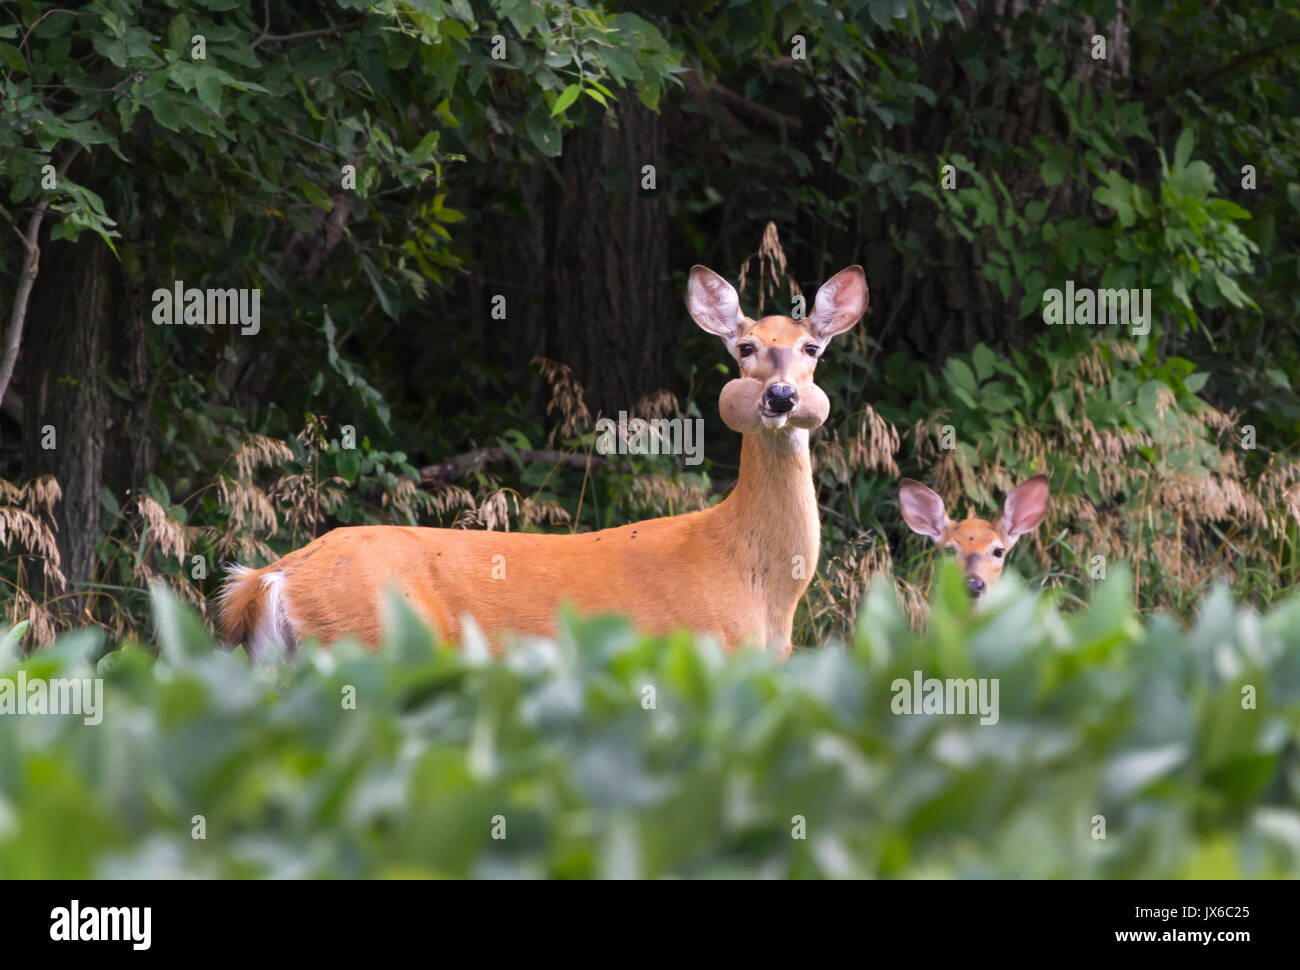 Doe of white-tailed deer with fawn at soybean field stealing soybeans and looking like hamster with its full mouth - Stock Image